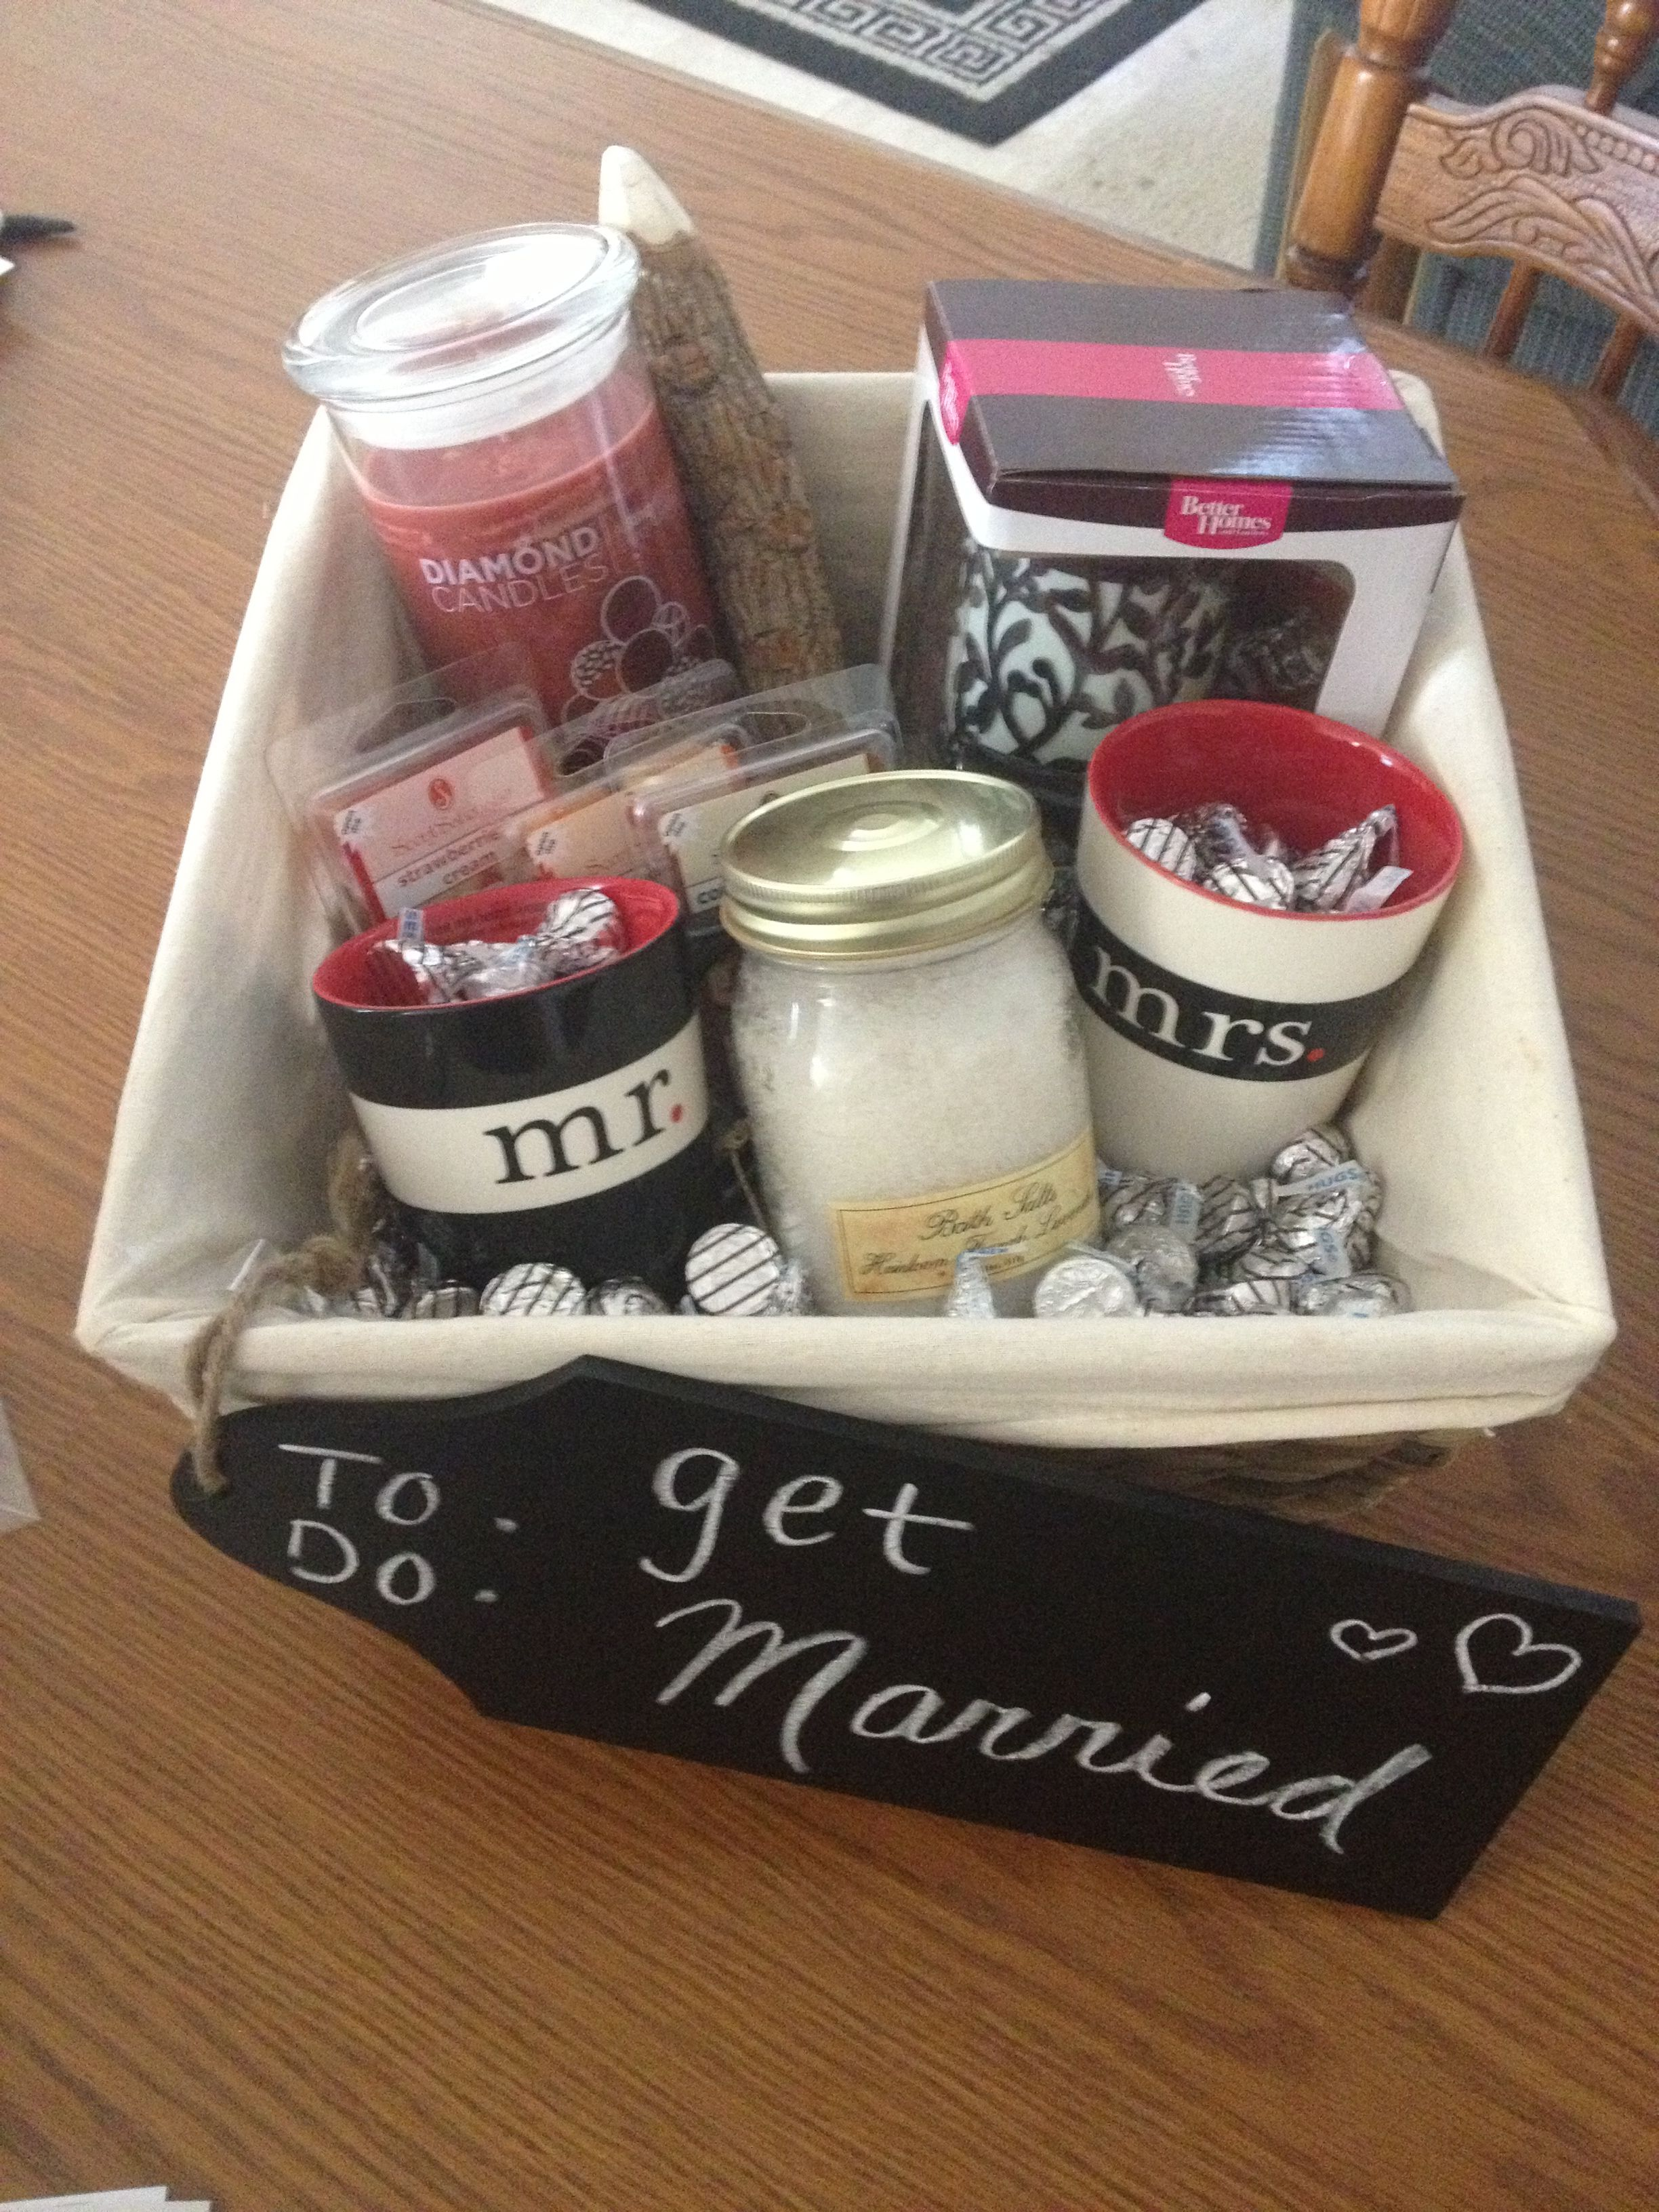 bridal shower gift basket for the bride you dont know too well or the couple that already have their home together smell good basket filled with kisses